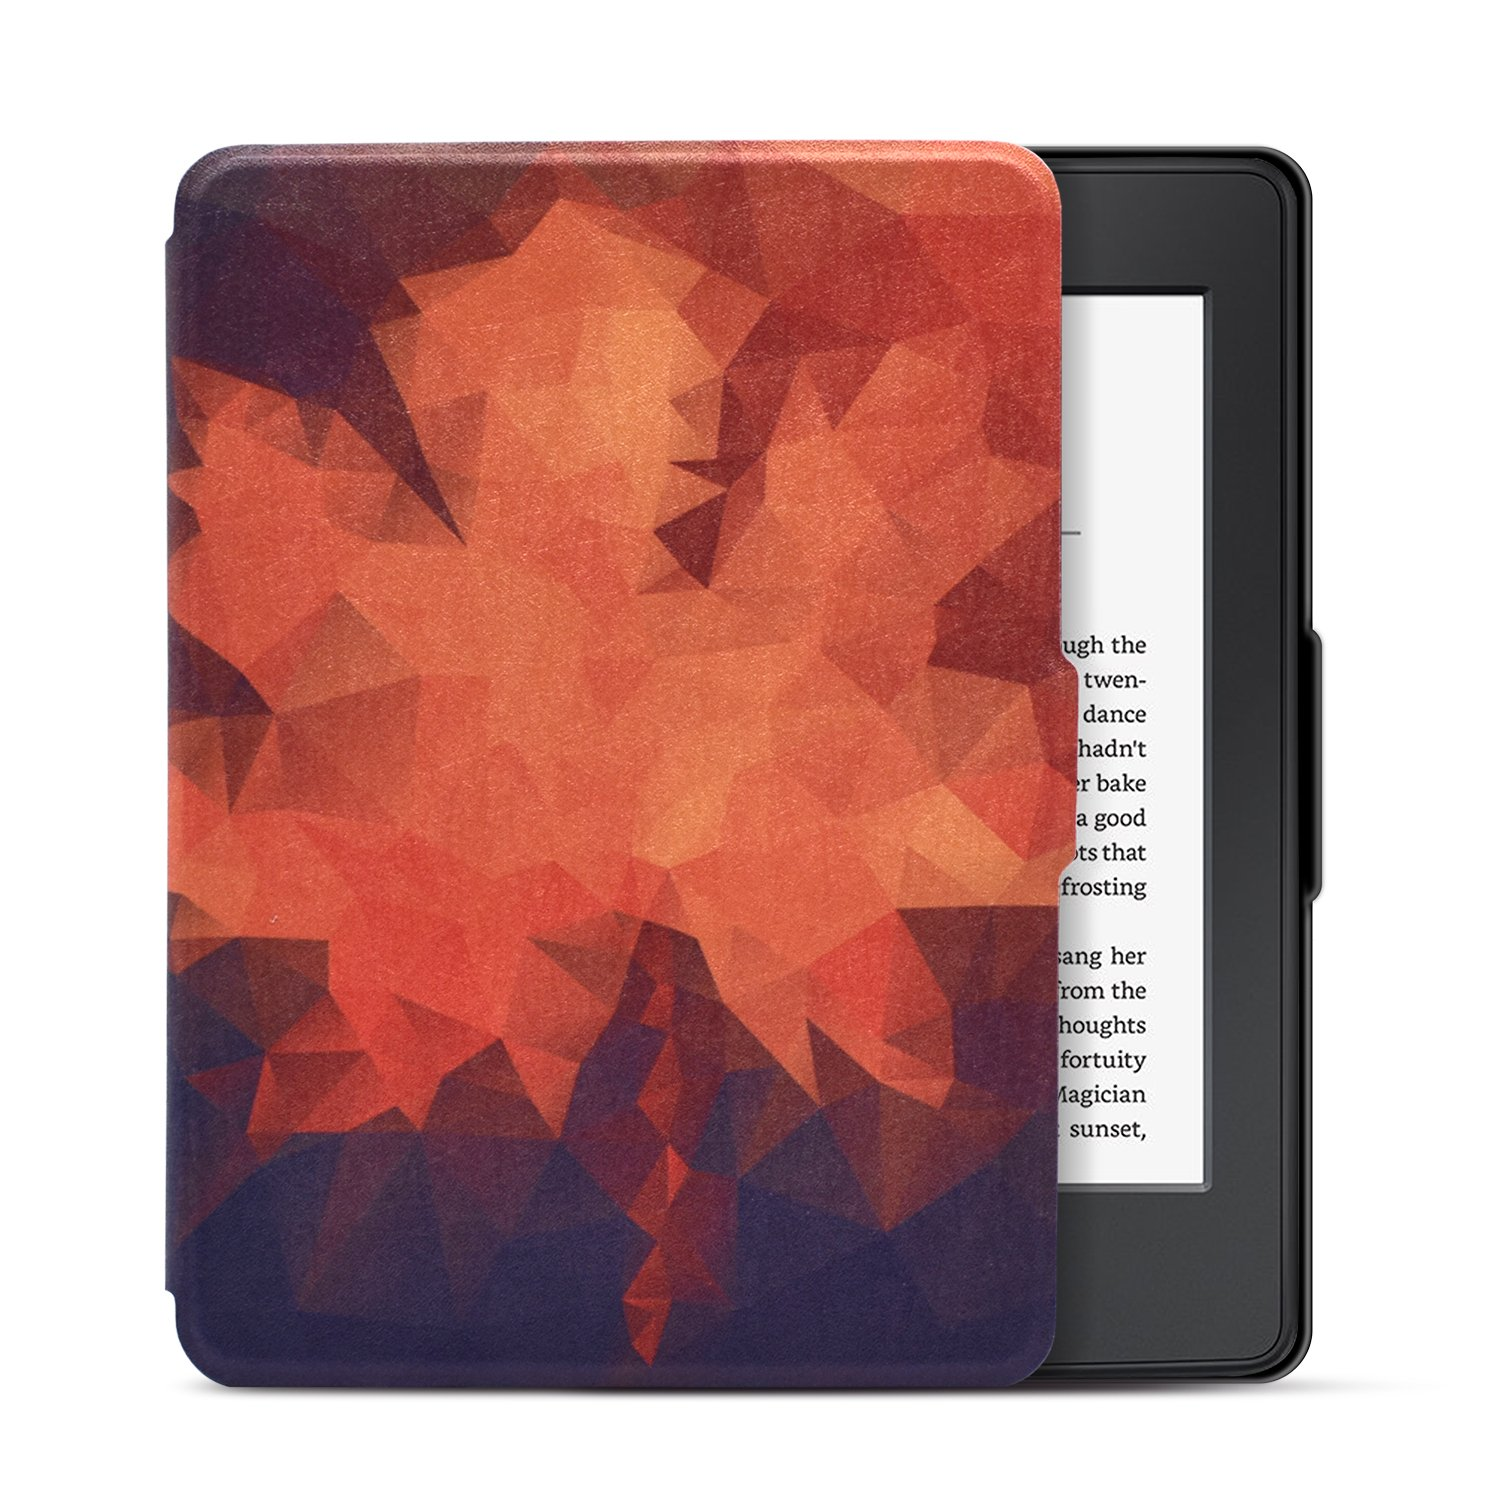 Dopup Kindle Paperwhite Case Light and Thin Smart Protective Cover for Amazon Kindle Paperwhite E-reader (Fits all 2012, 2013, and 2015 Versions), with Auto Wake/Sleep Function(Geometry Maple)